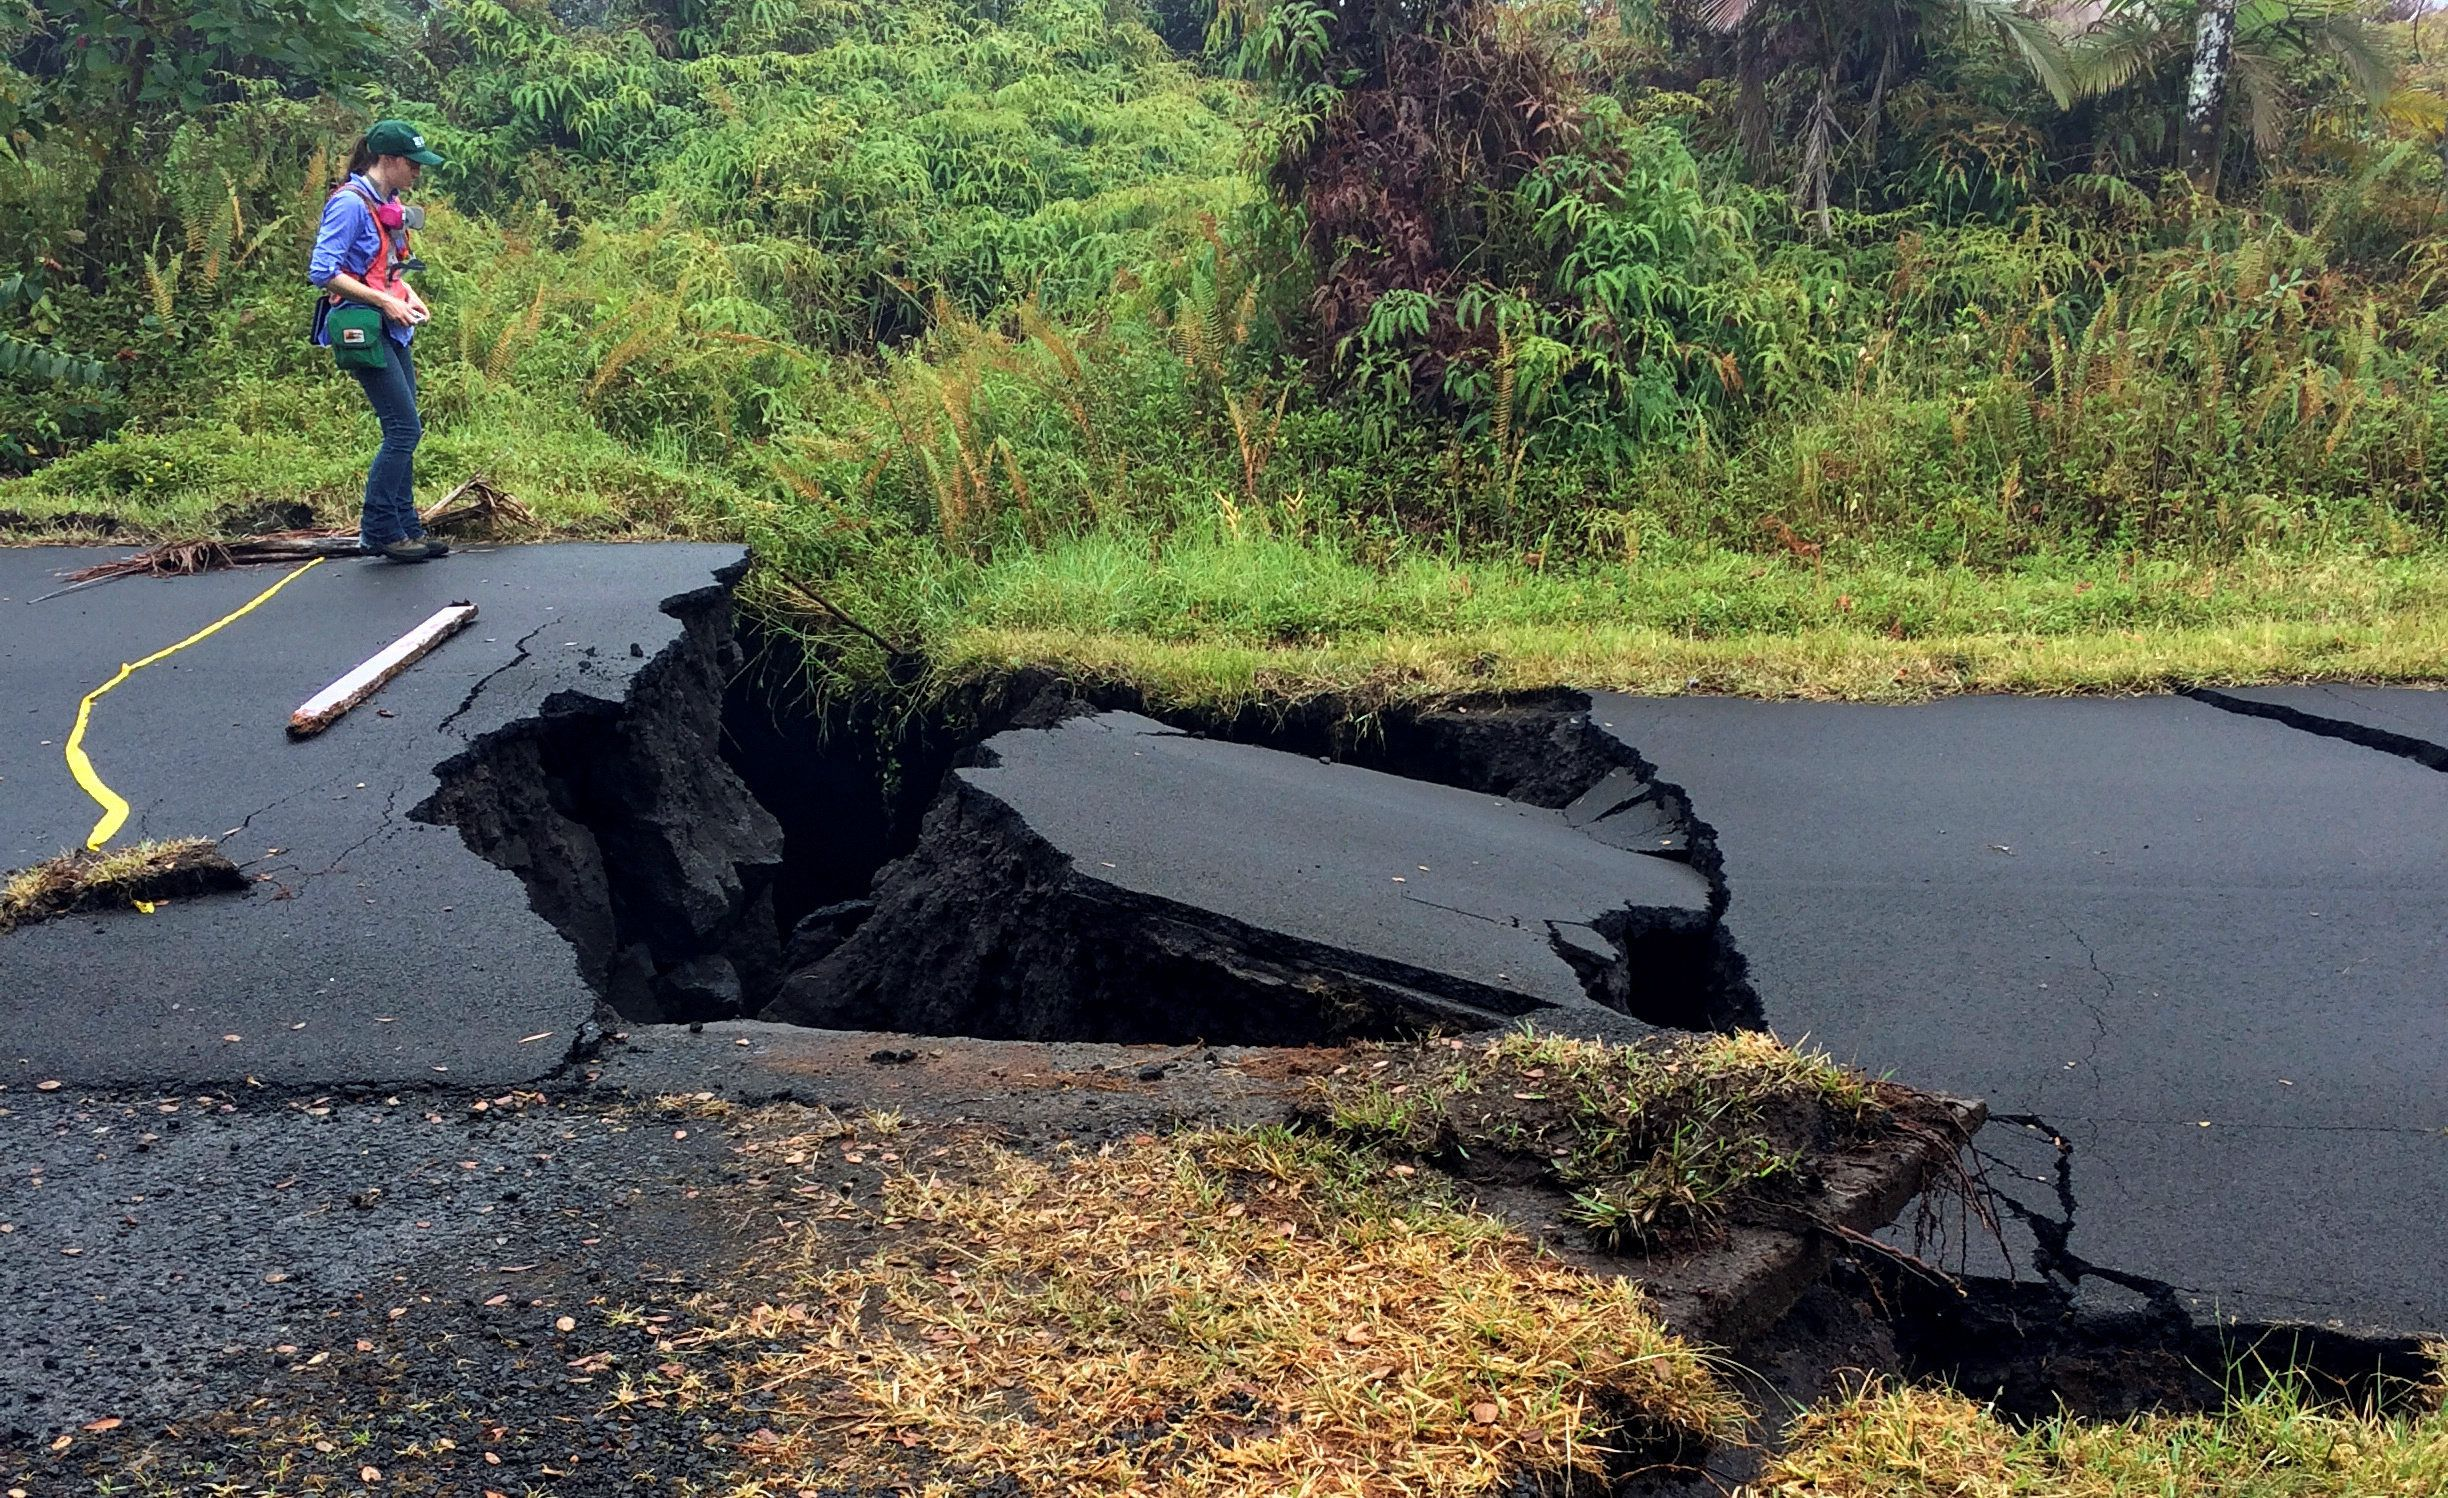 Hawaii's Kilauea Volcano Blew Last Night And Could Do Again Within